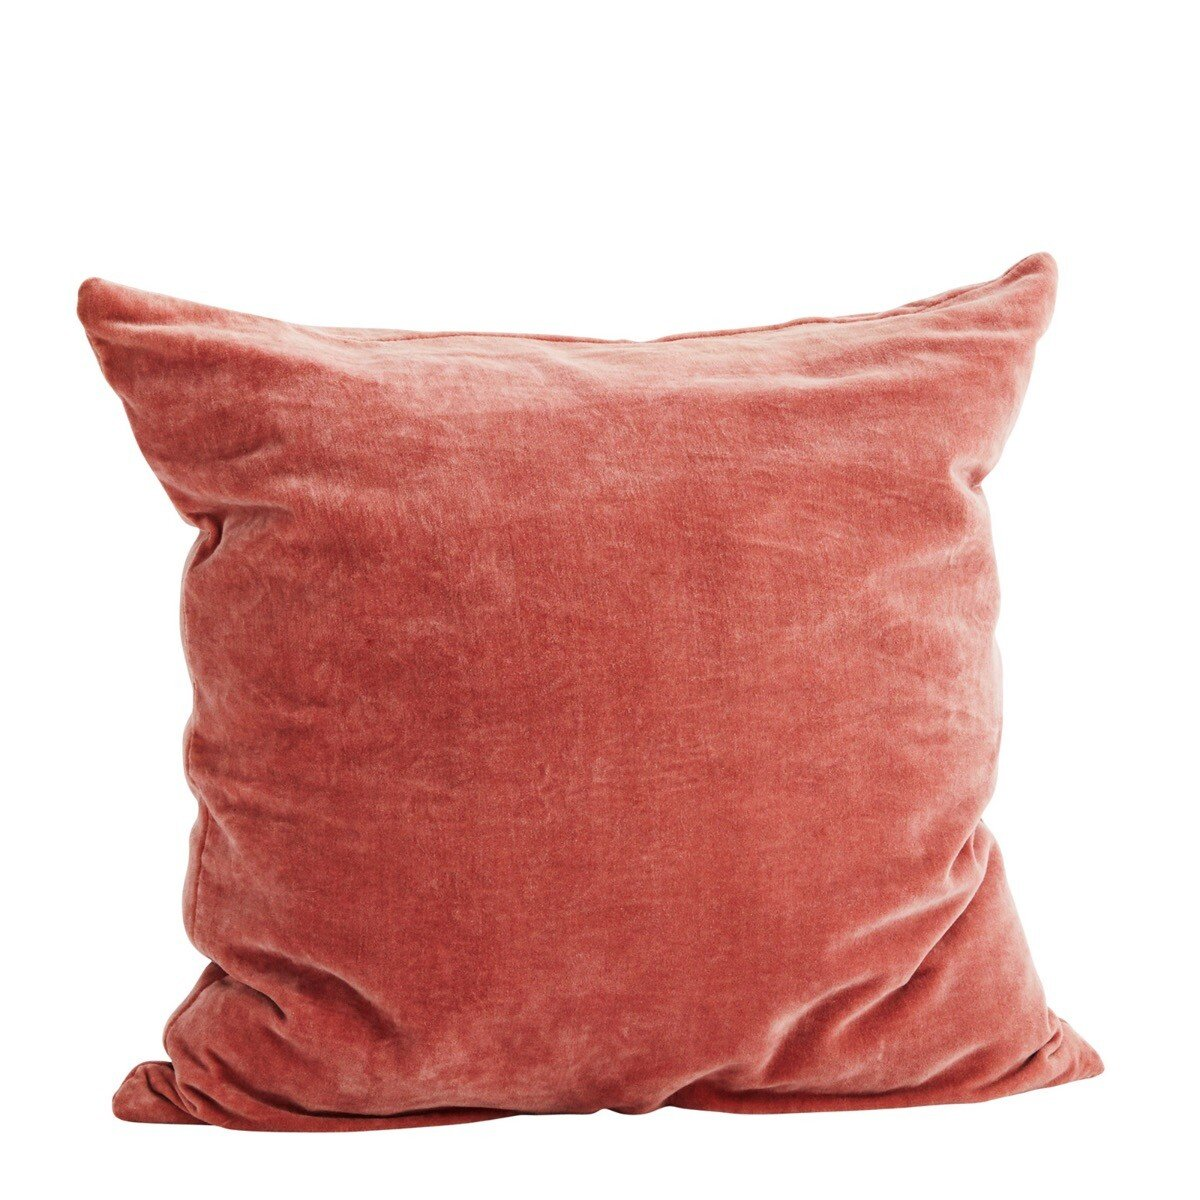 Madam Stoltz Kussenhoes dusty rose velvet 50 x 50